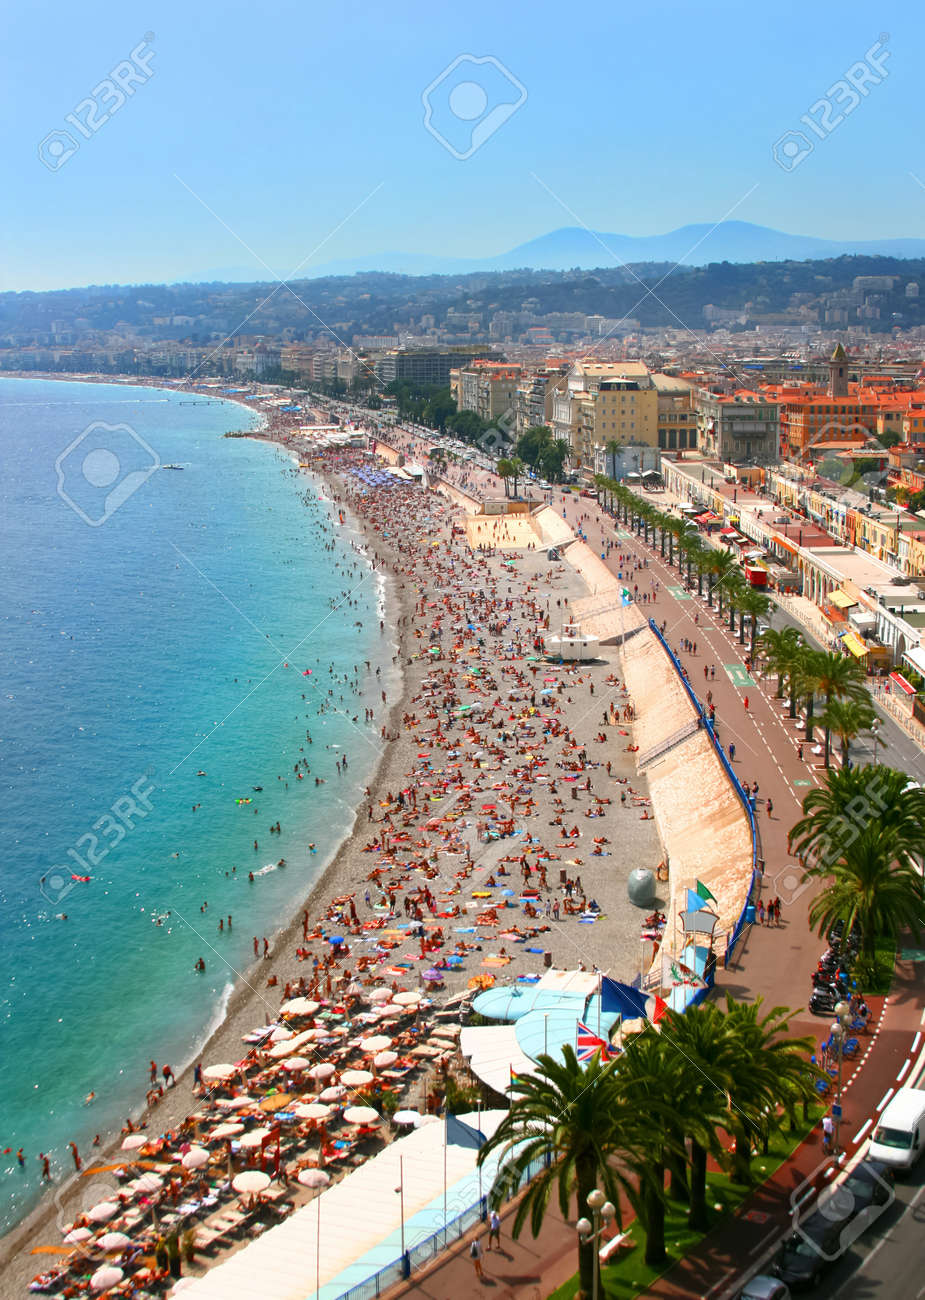 Luxury resort of French riviera. Fantastic panorama city of Nice in France. Sunny, summer day. Mediterranean sea, public beach, famous quay, palms and houses of Nice. - 10291300